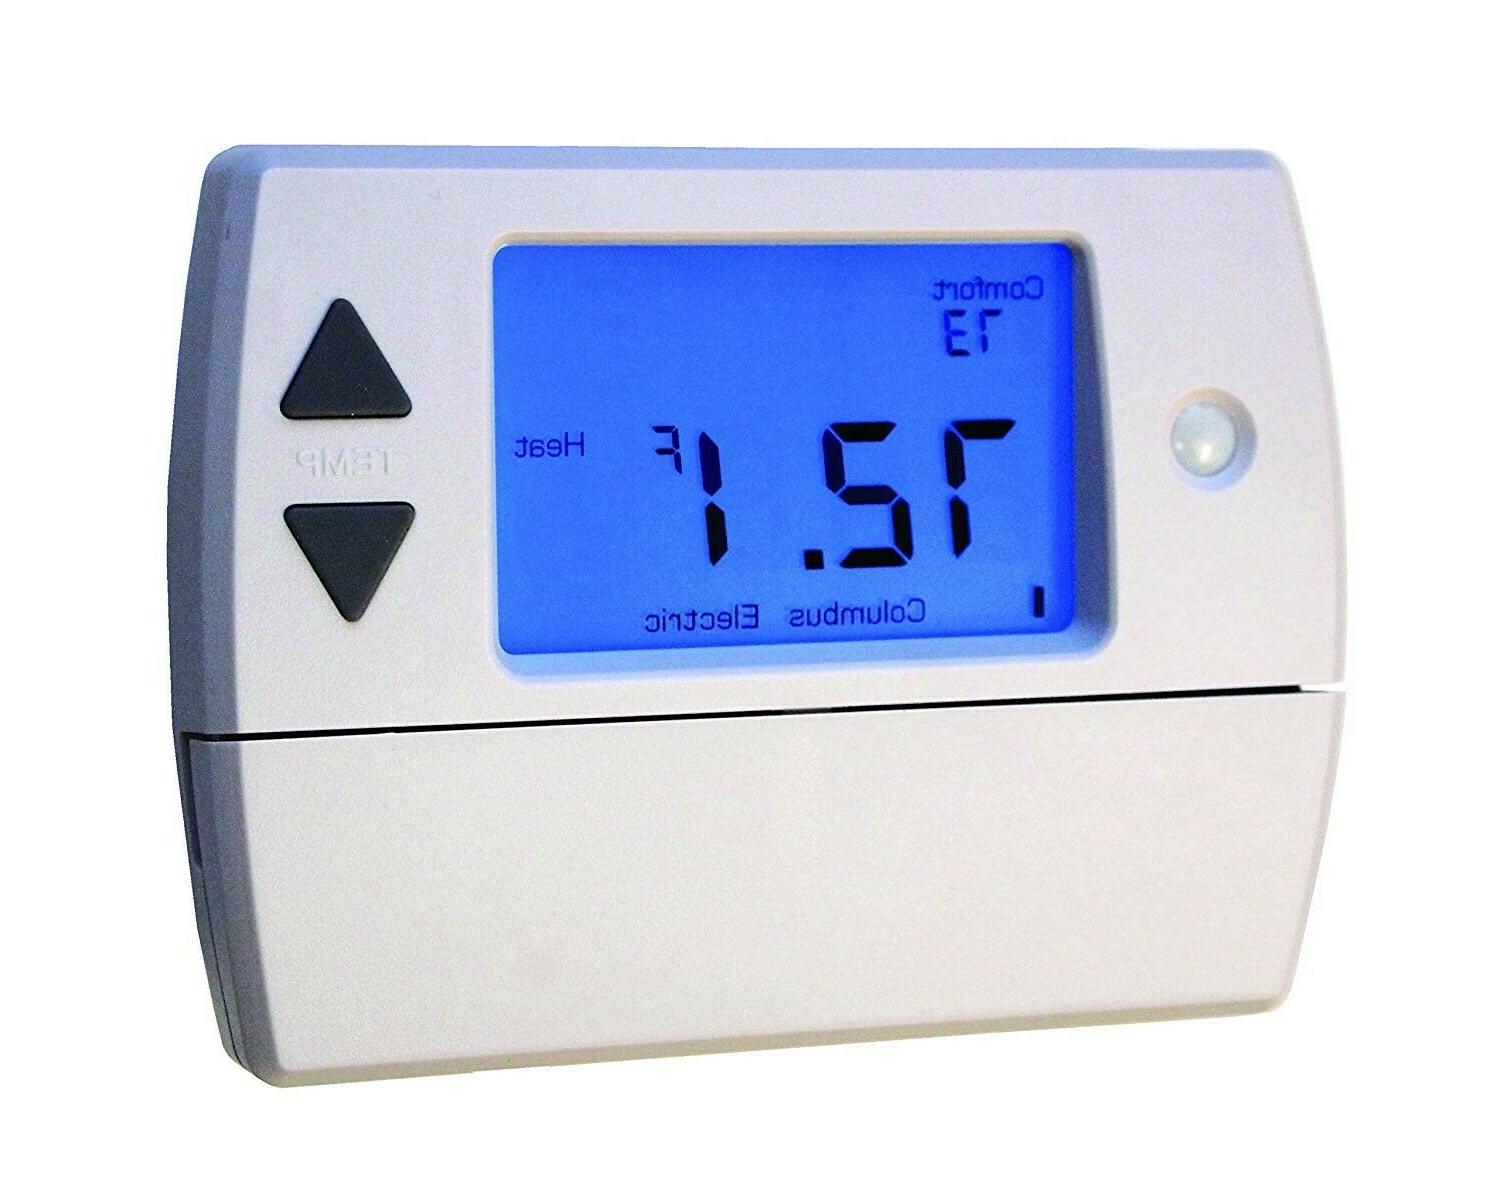 sdhw1001 clever comfort commercial thermostat